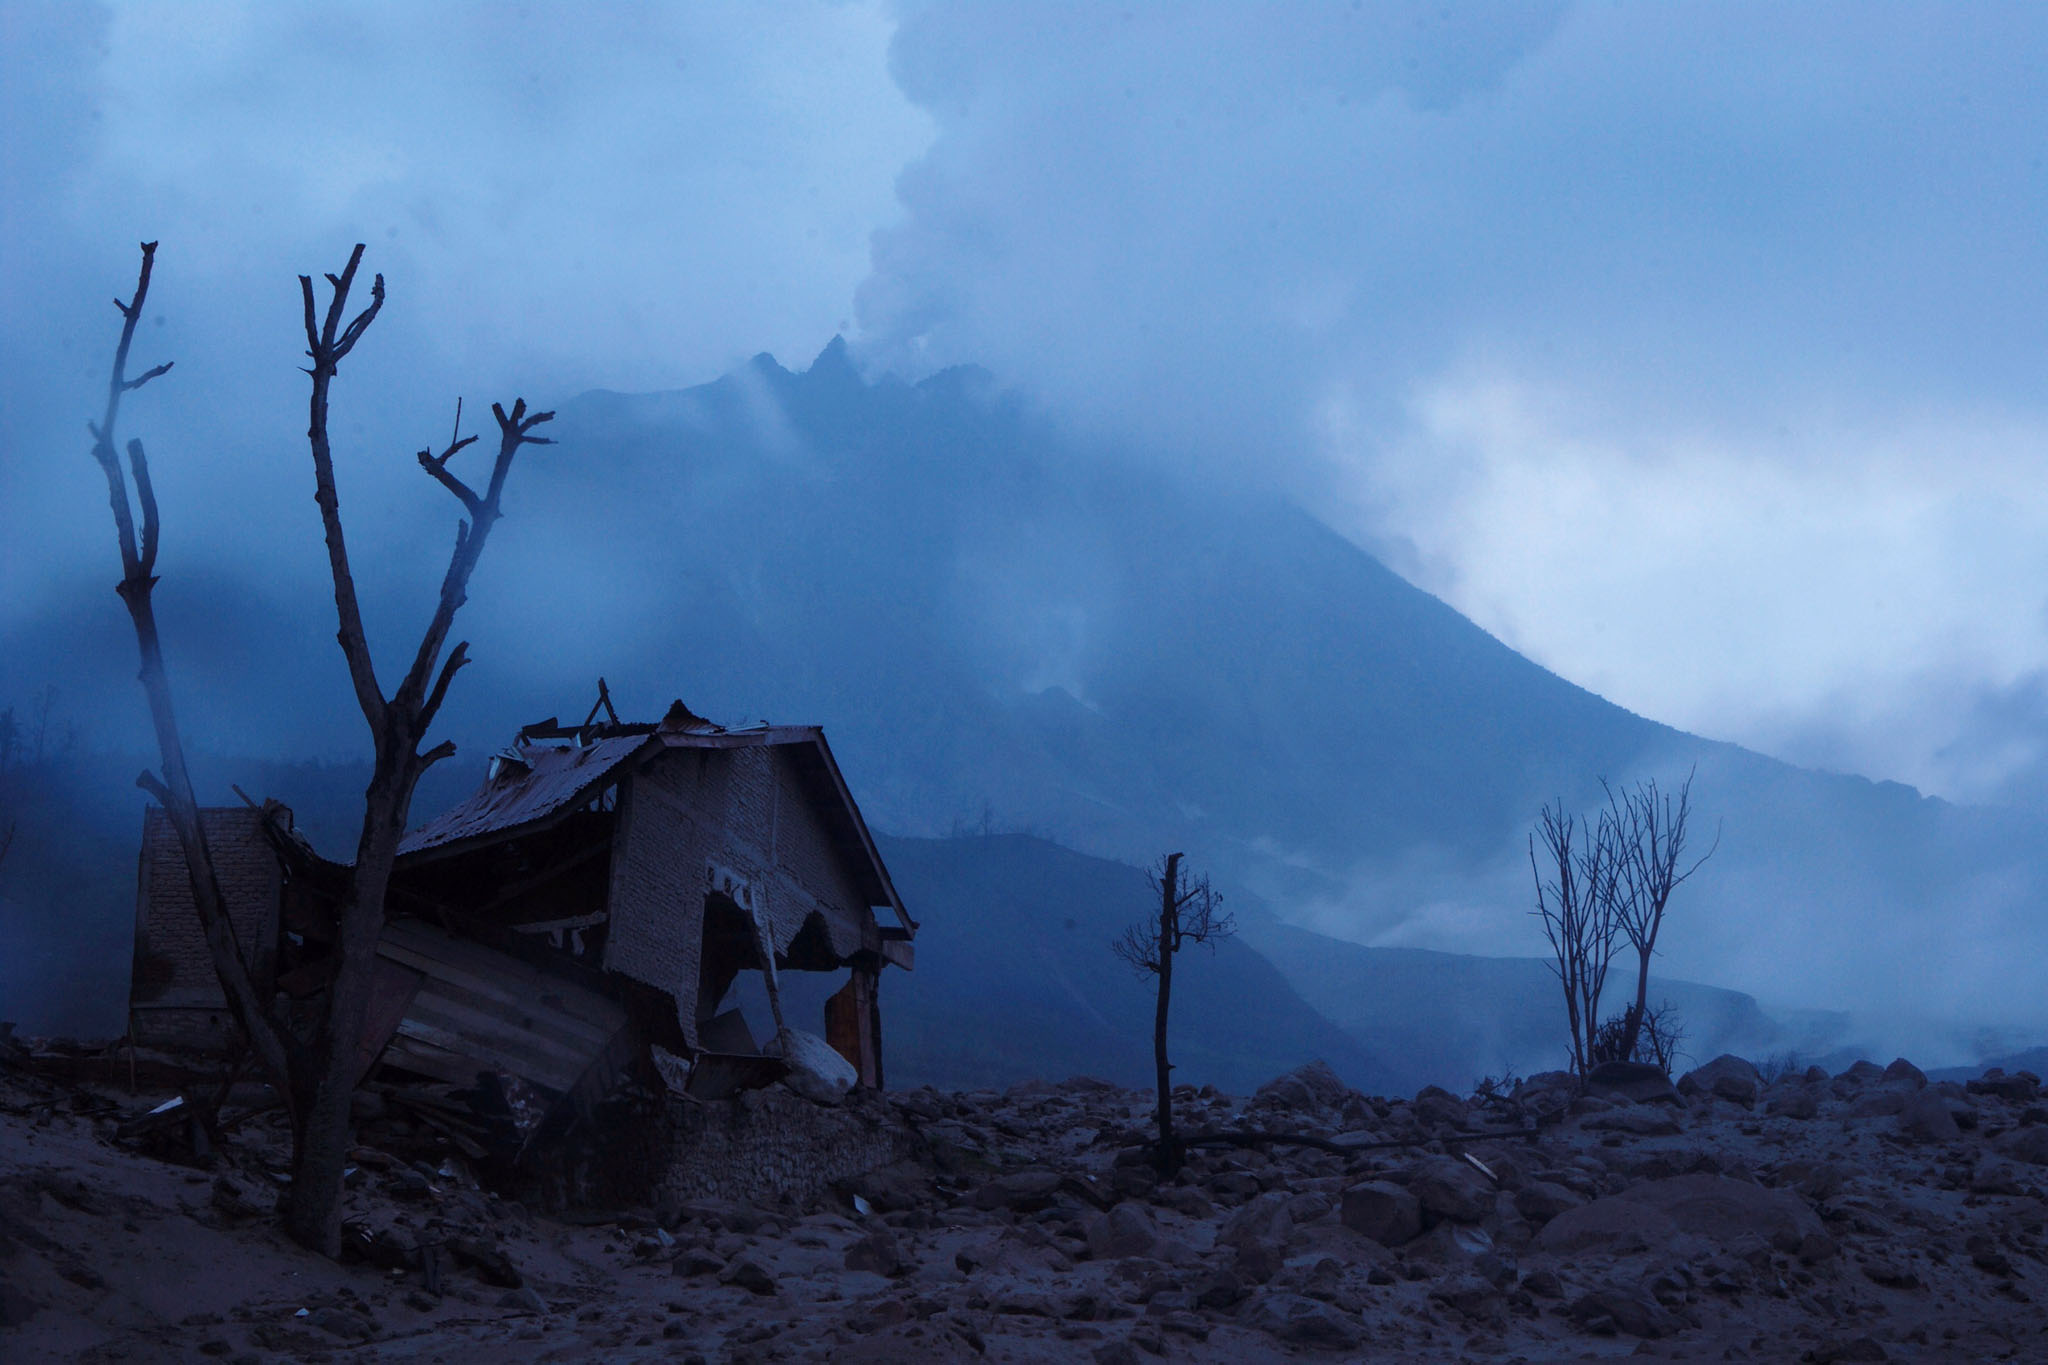 TOPSHOTS In this photograph taken on Oct...TOPSHOTS In this photograph taken on October 30, 2014, a house is in ruins and partly buried by volcanic ash and lava from the eruption of Mount Sinabung volcano seen in the background, as seen from the abandoned Sukameriah village in Karo district located in the volcano's danger zone. Indonesian President Joko Widodo ordered authorities to speed up the relocation of displaced residents during his visit at the evacuation center in Karo district in Sumatra island on October 29, 2014. Sinabung began erupting on September 2013 and in February 2014 an eruption killed about 17 people while more than 33,000 residents were forced to flee their homes.  AFP PHOTO / SUTANTA ADITYASUTANTA ADITYA/AFP/Getty Images